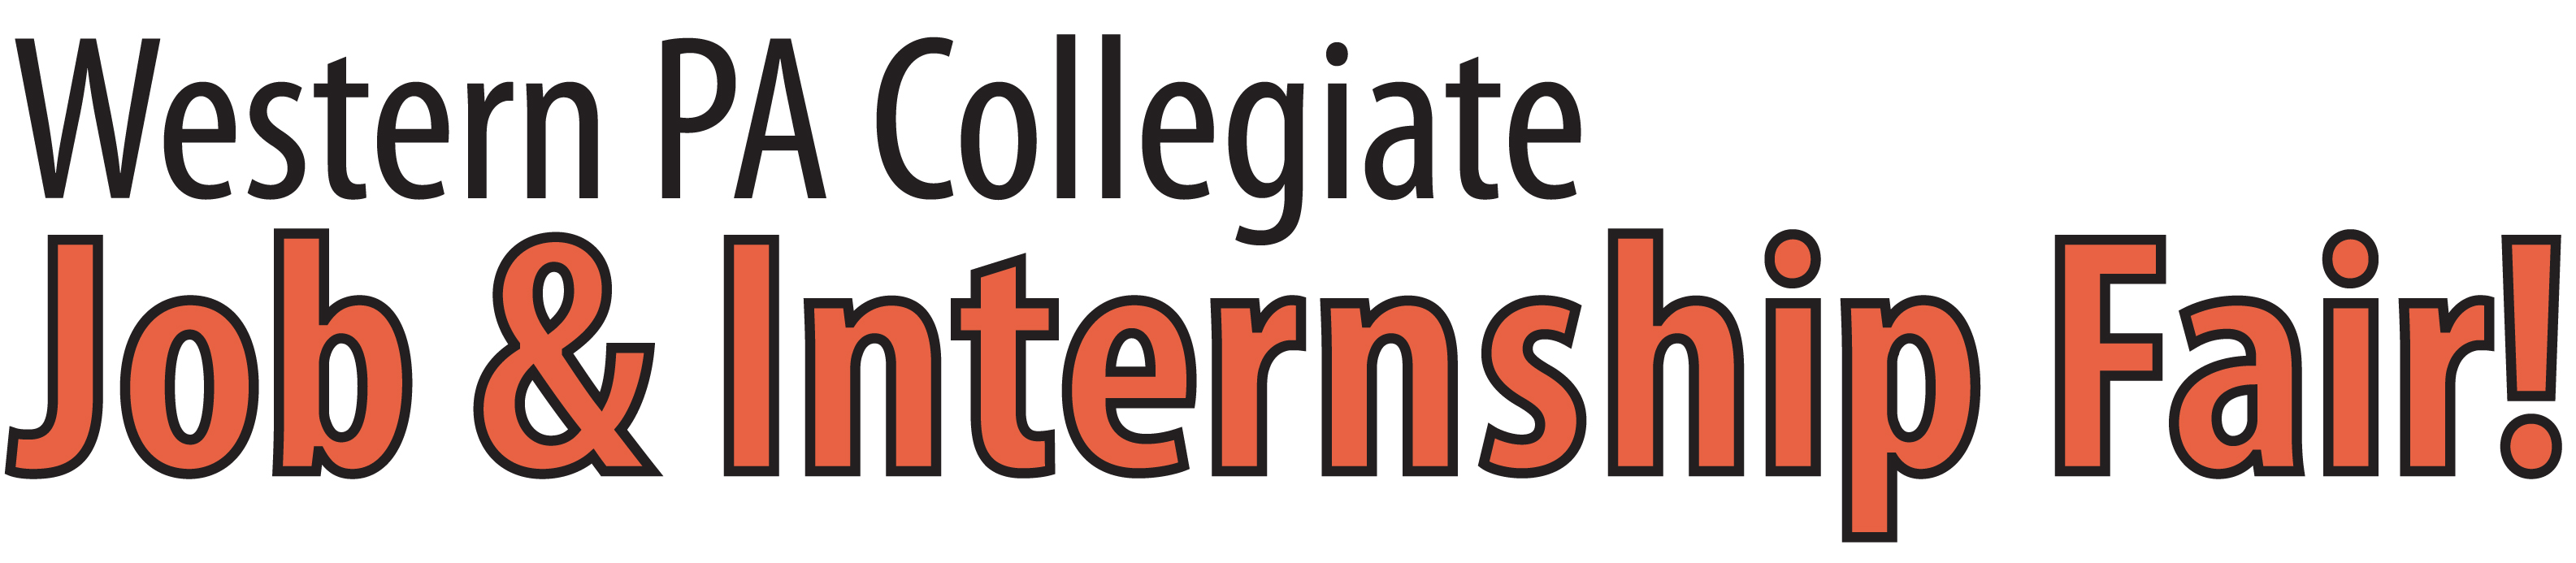 Western PA Collegiate Job & Internship Fair